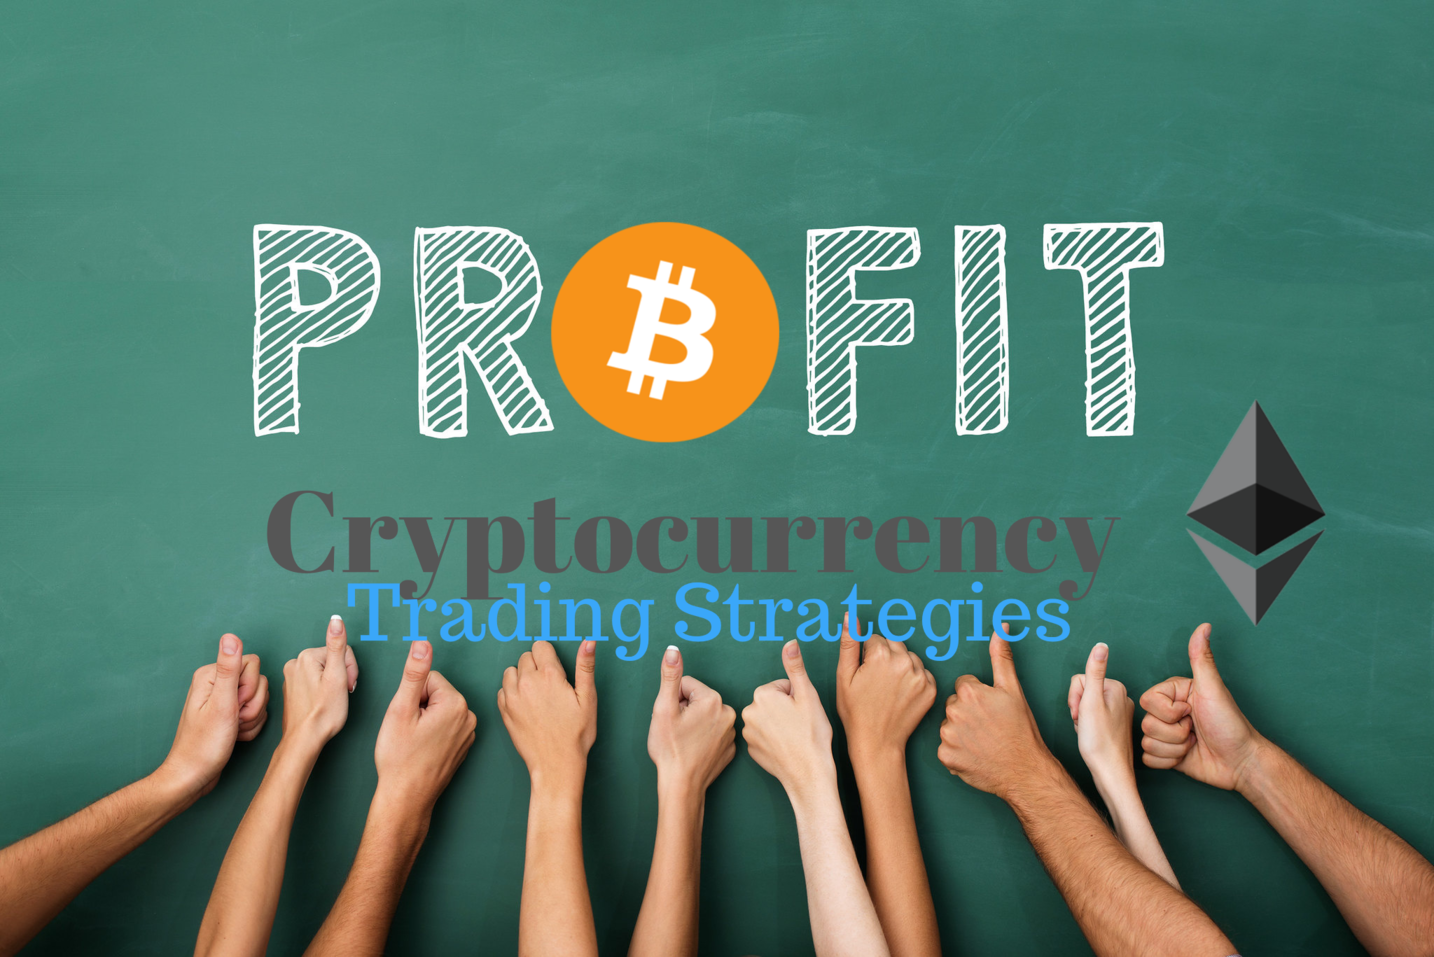 Trading strategy cryptocurrency